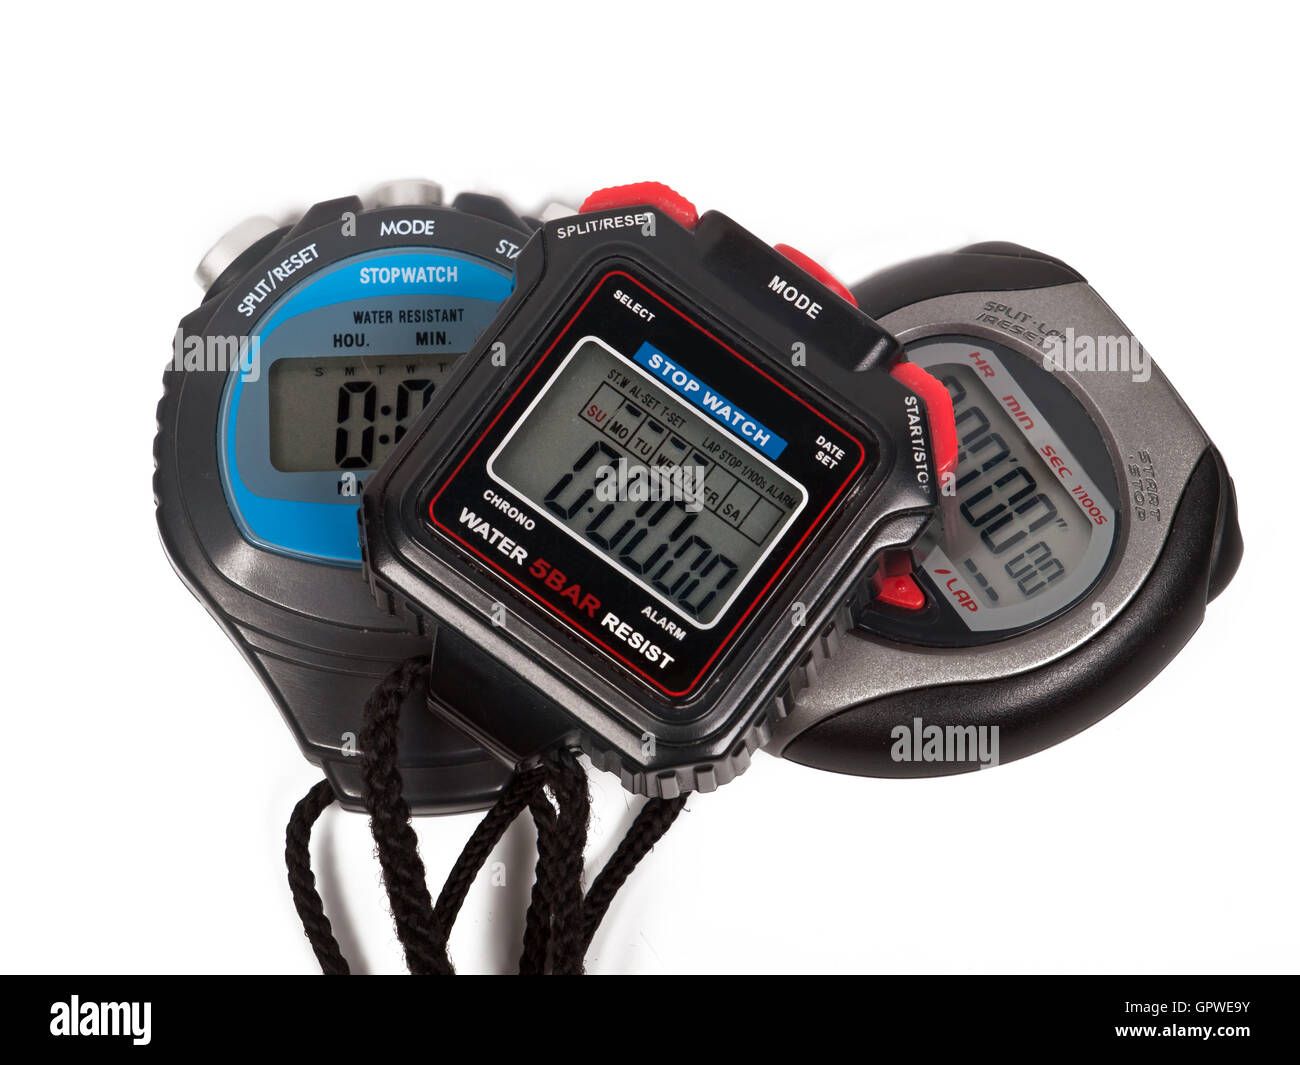 Three digital stop watches - Stock Image